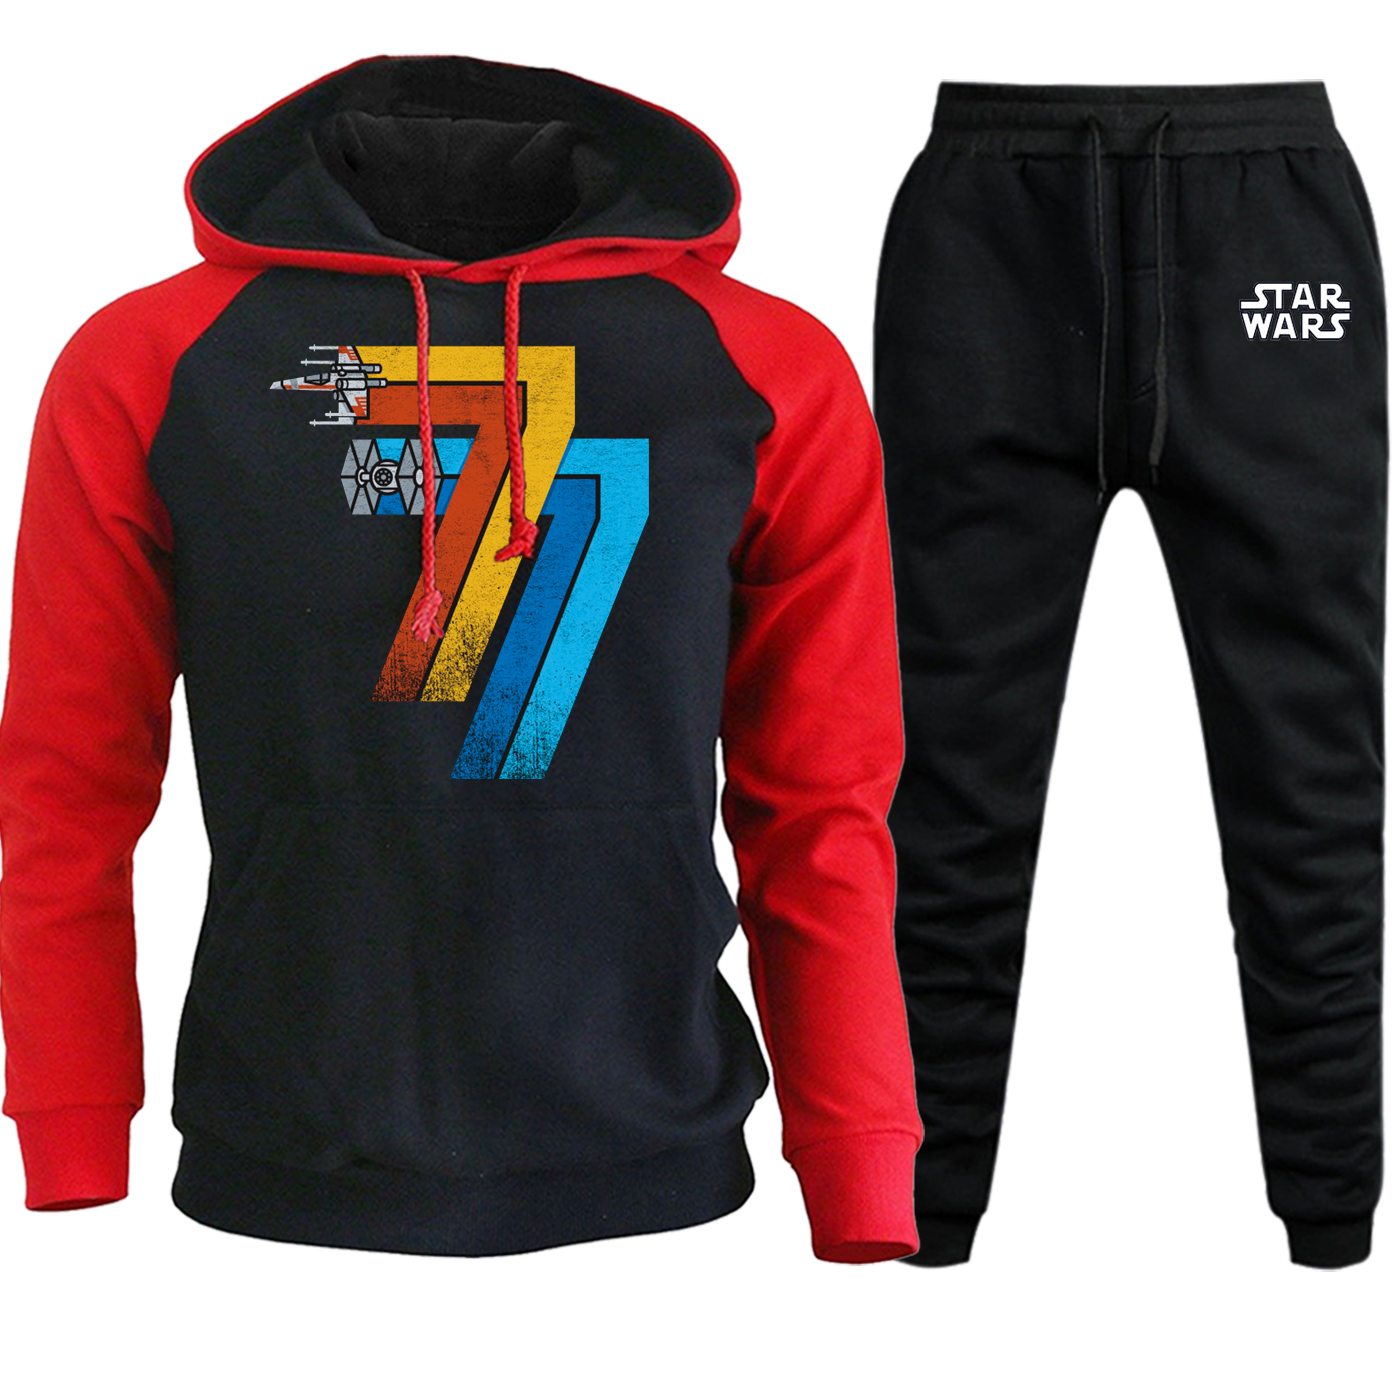 May 25th1977 Star Wars Sweatshirts Mens Hoodies Raglan Autumn Winter 2019 Casual Pullover Suit Fleece Hooded+Pants 2 Piece Set